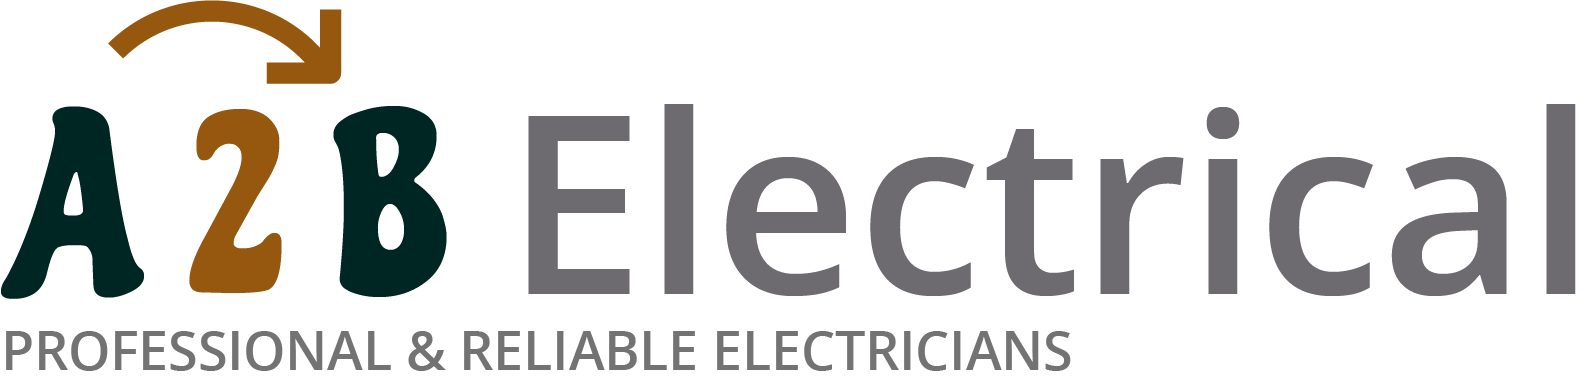 If you have electrical wiring problems in Upper Holloway, we can provide an electrician to have a look for you.